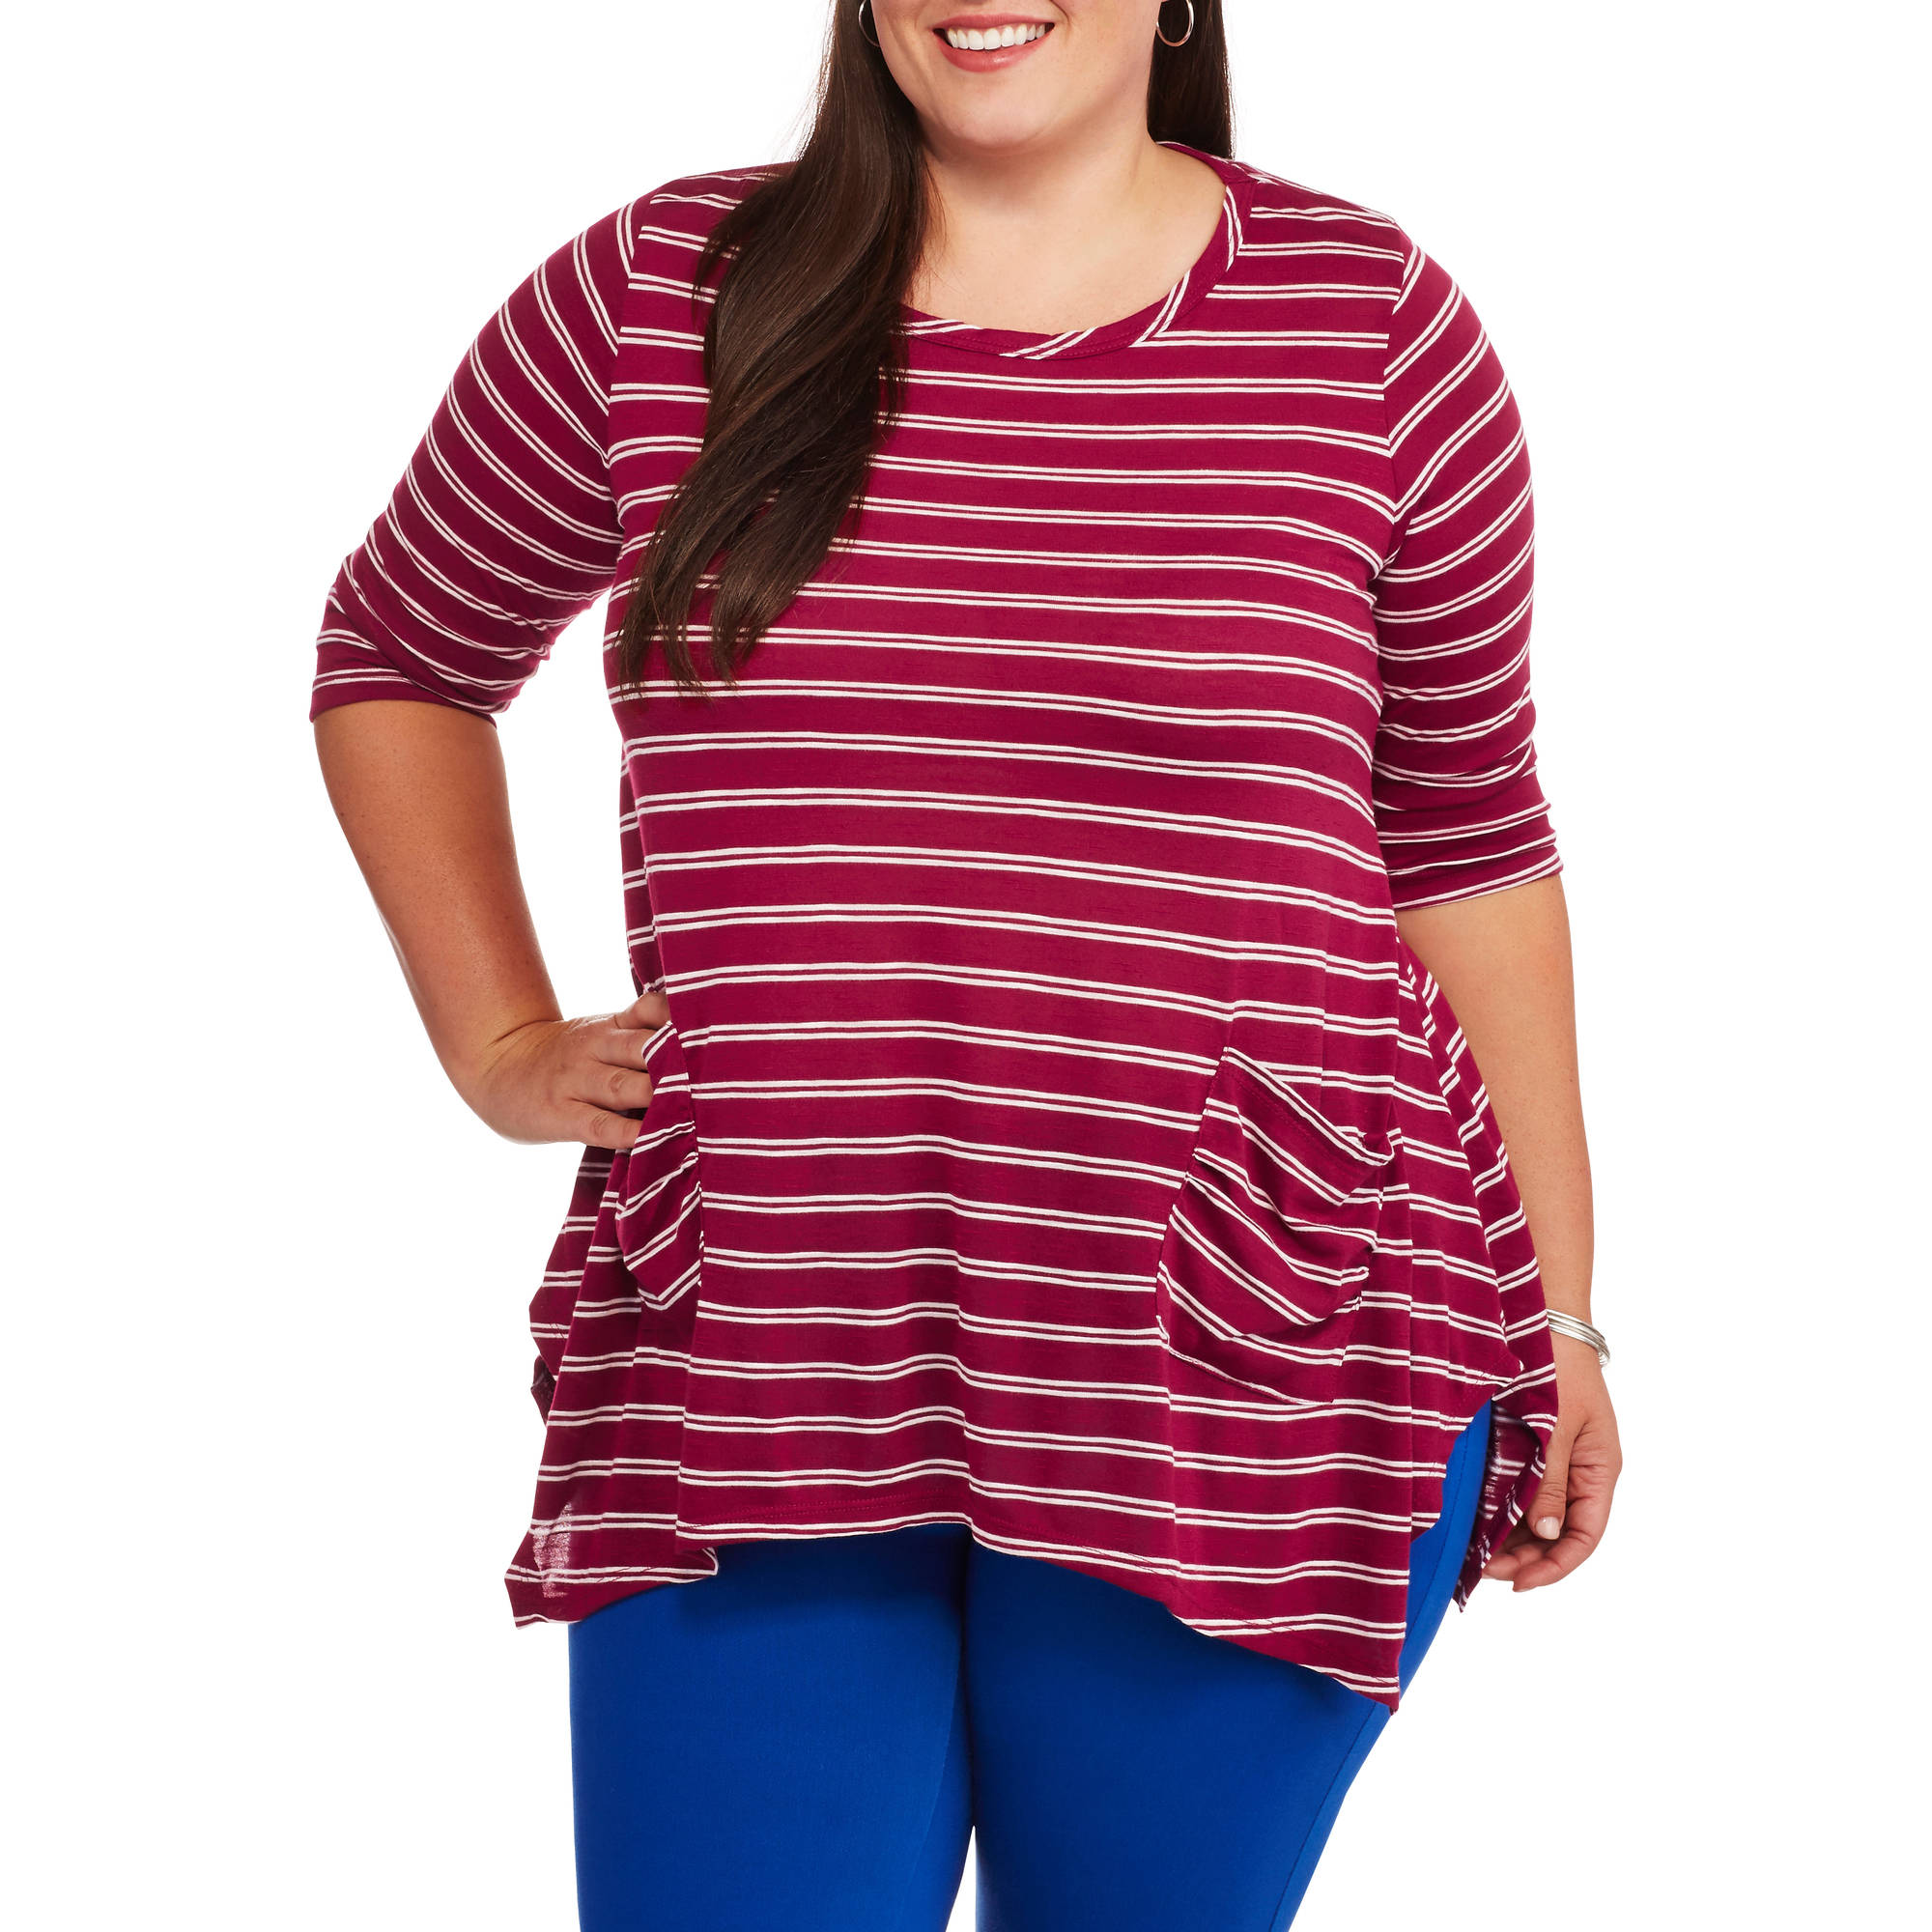 French Laundry Women's Plus Stripe 3/4 Sleeve Sharkbite Top with Pockets